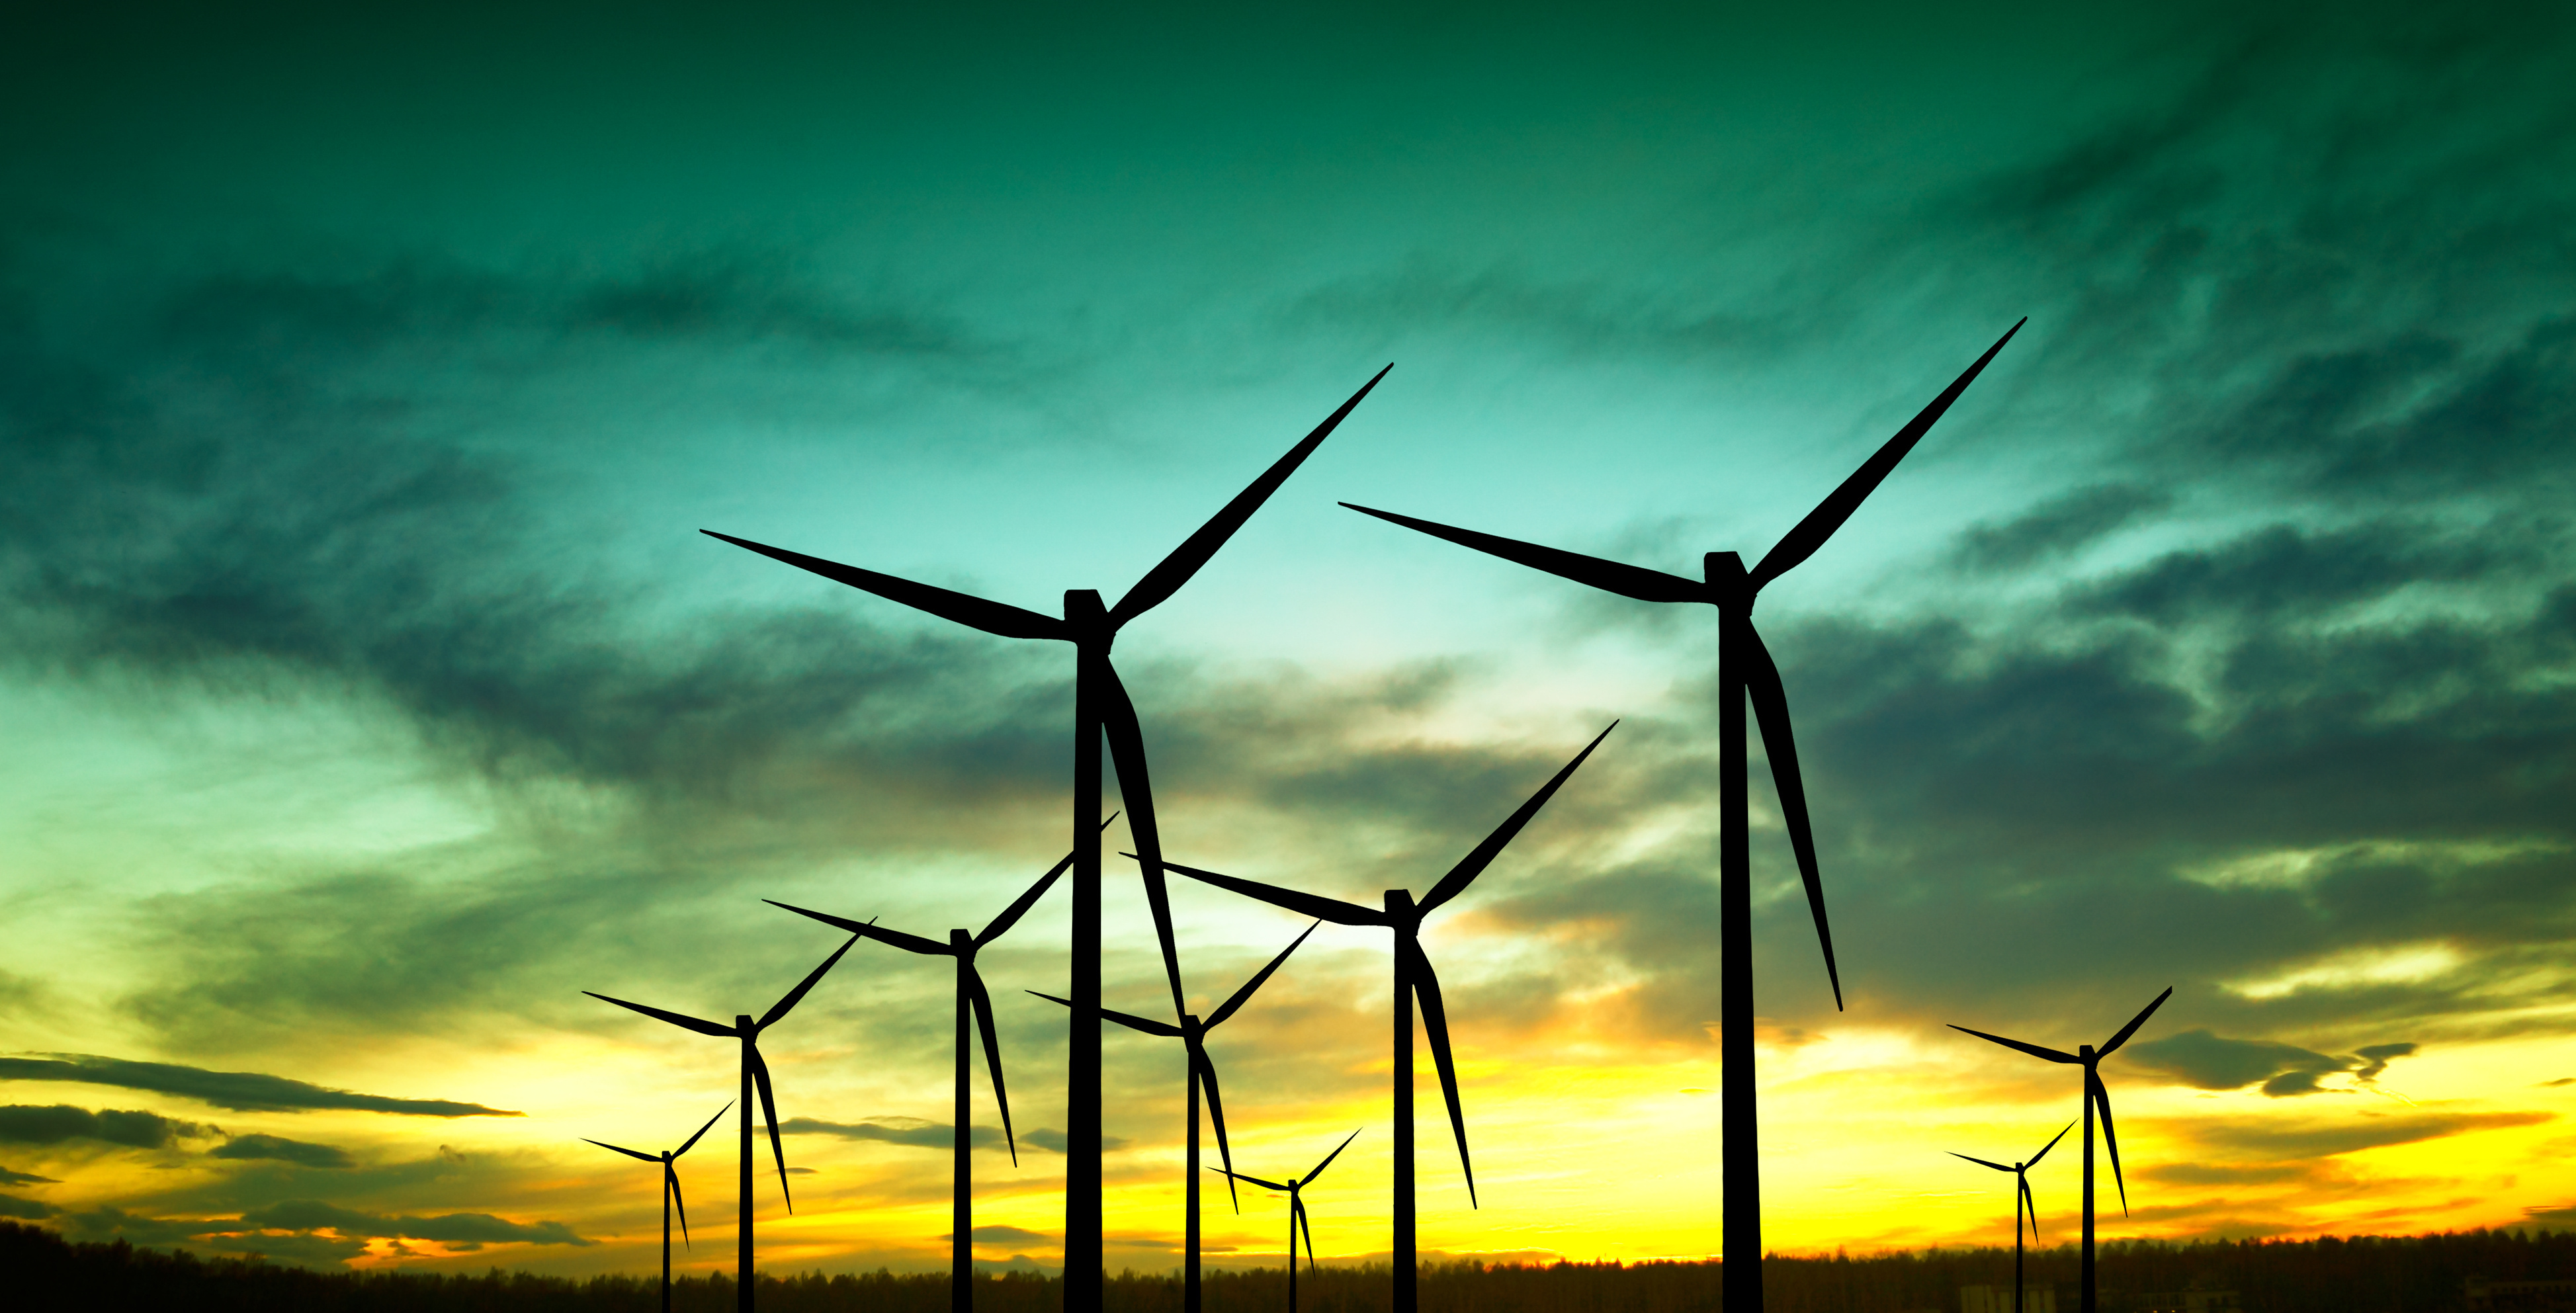 UK Government funding helps tech sector boost wind energy